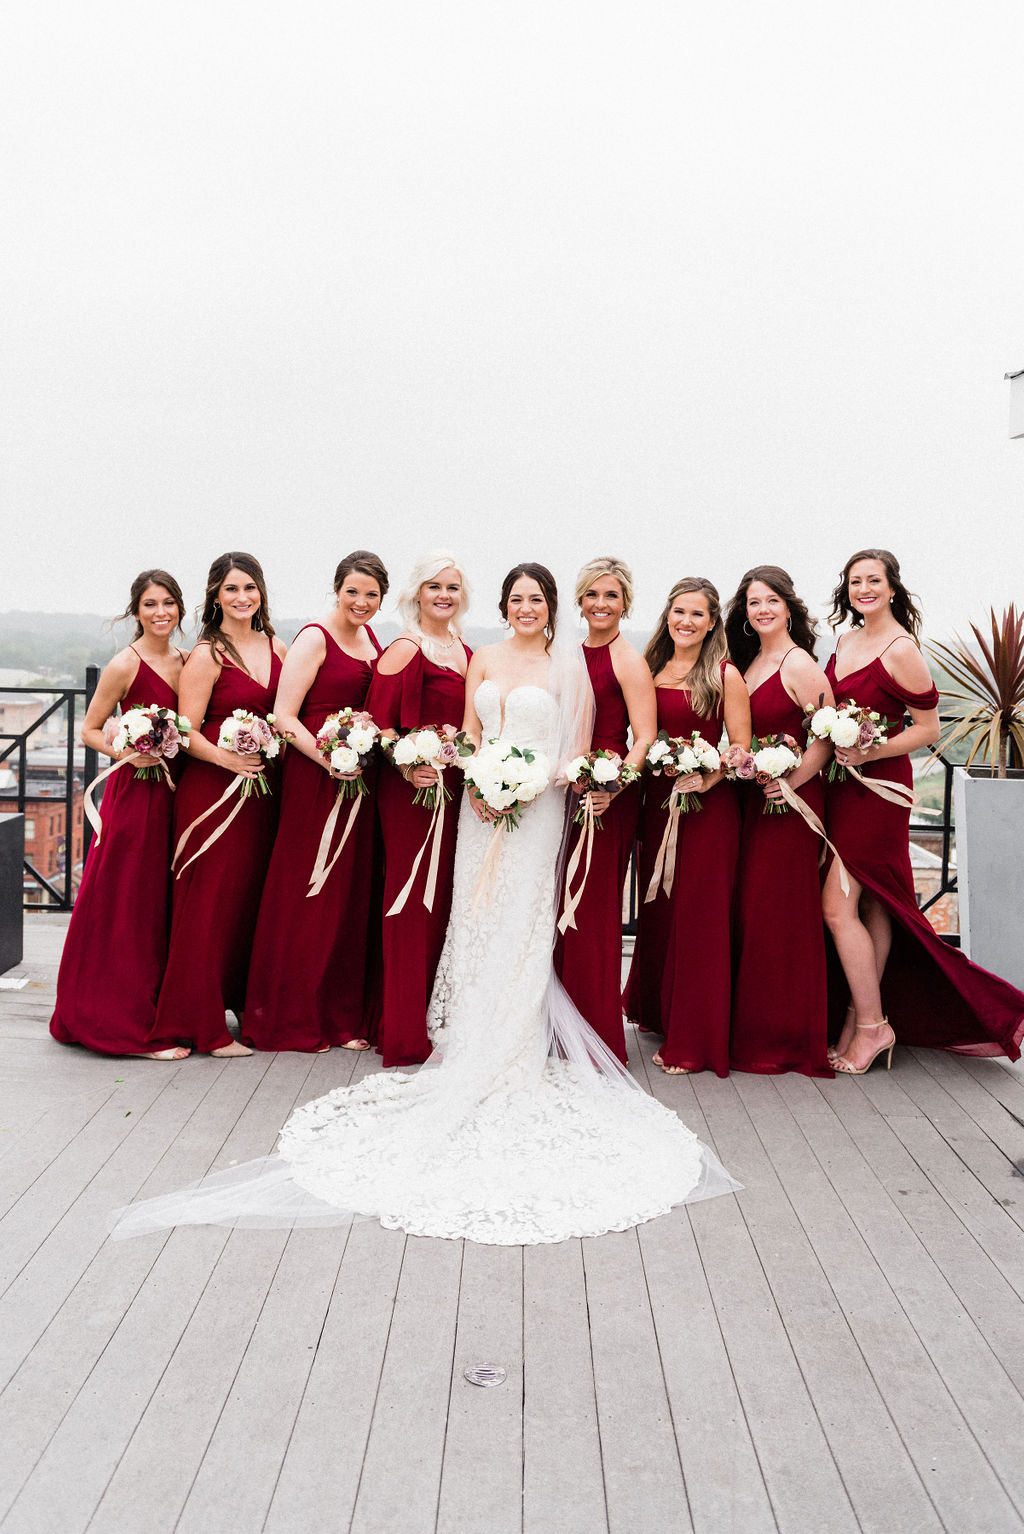 A bride and her bridesmaids smiling before her wedding